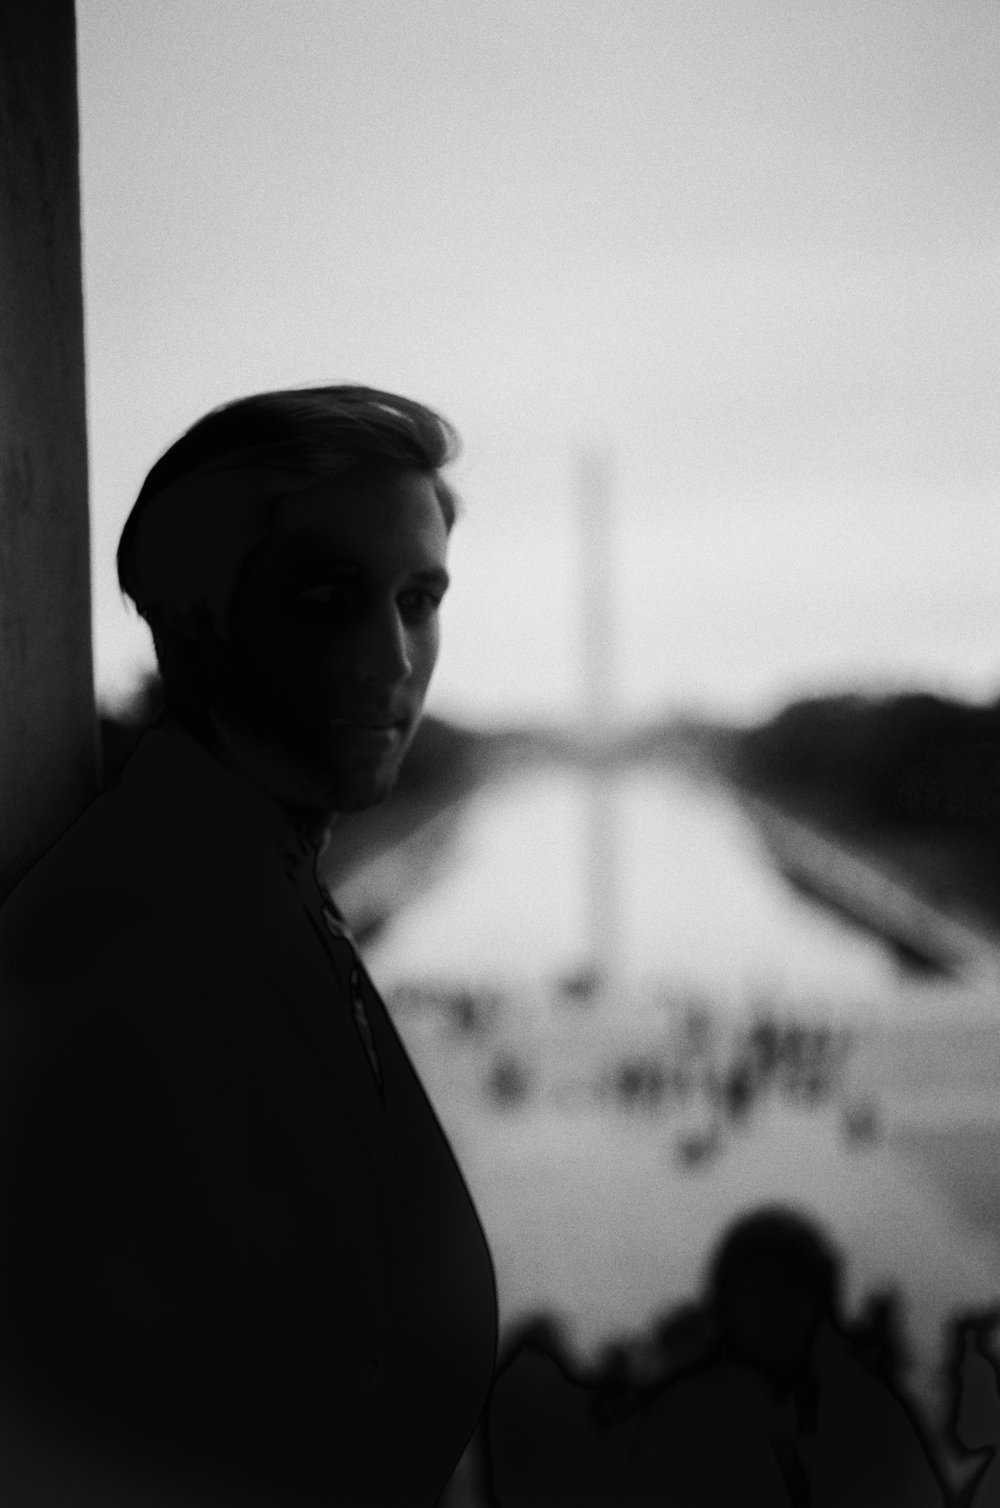 From the Lincoln Memorial to the Washington Monument.